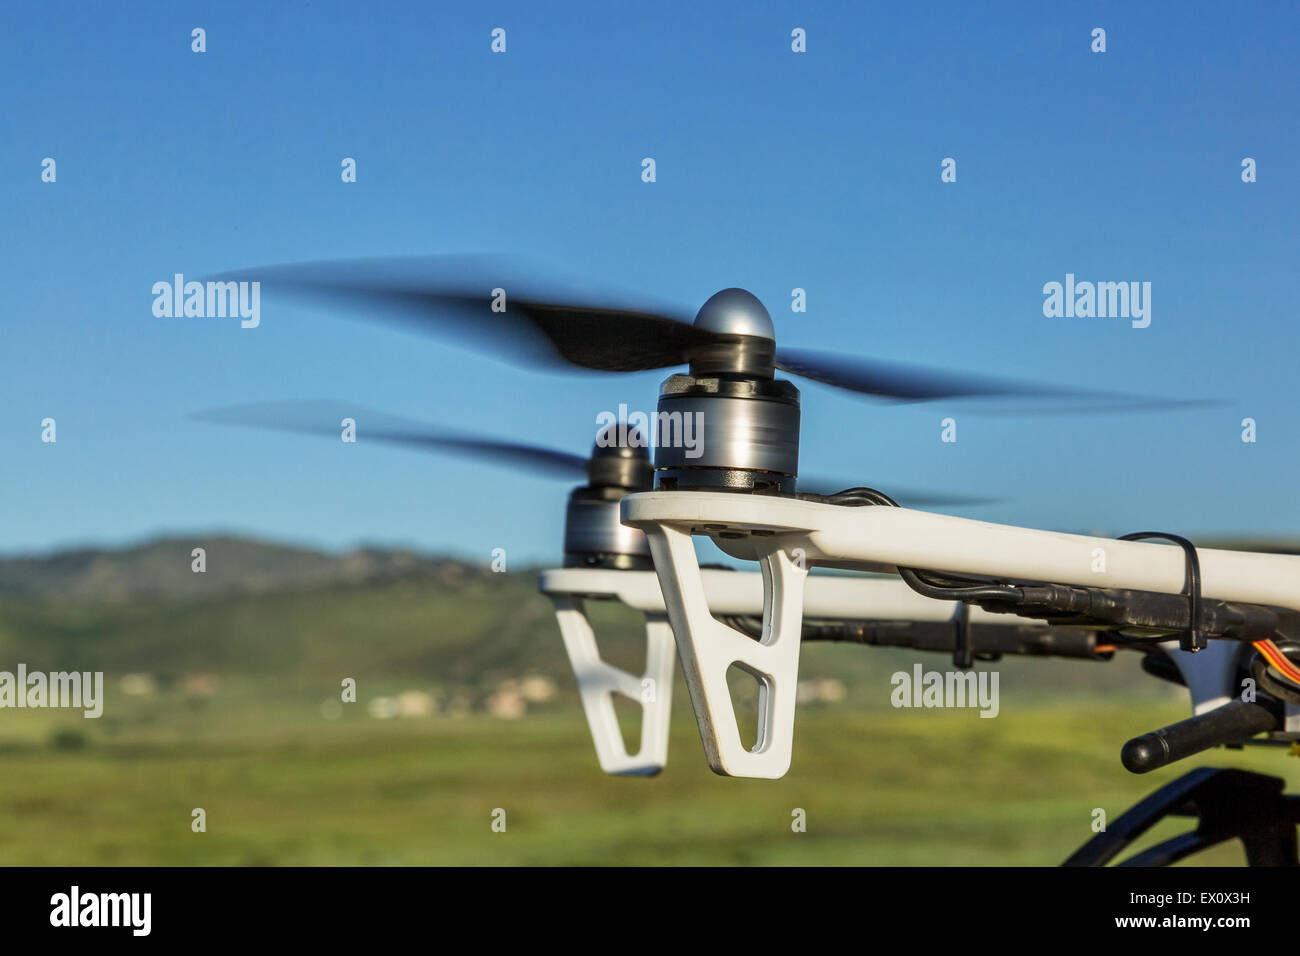 blurred spinning propellers of a hexacopter drone flying over foothills prairie - Stock Image